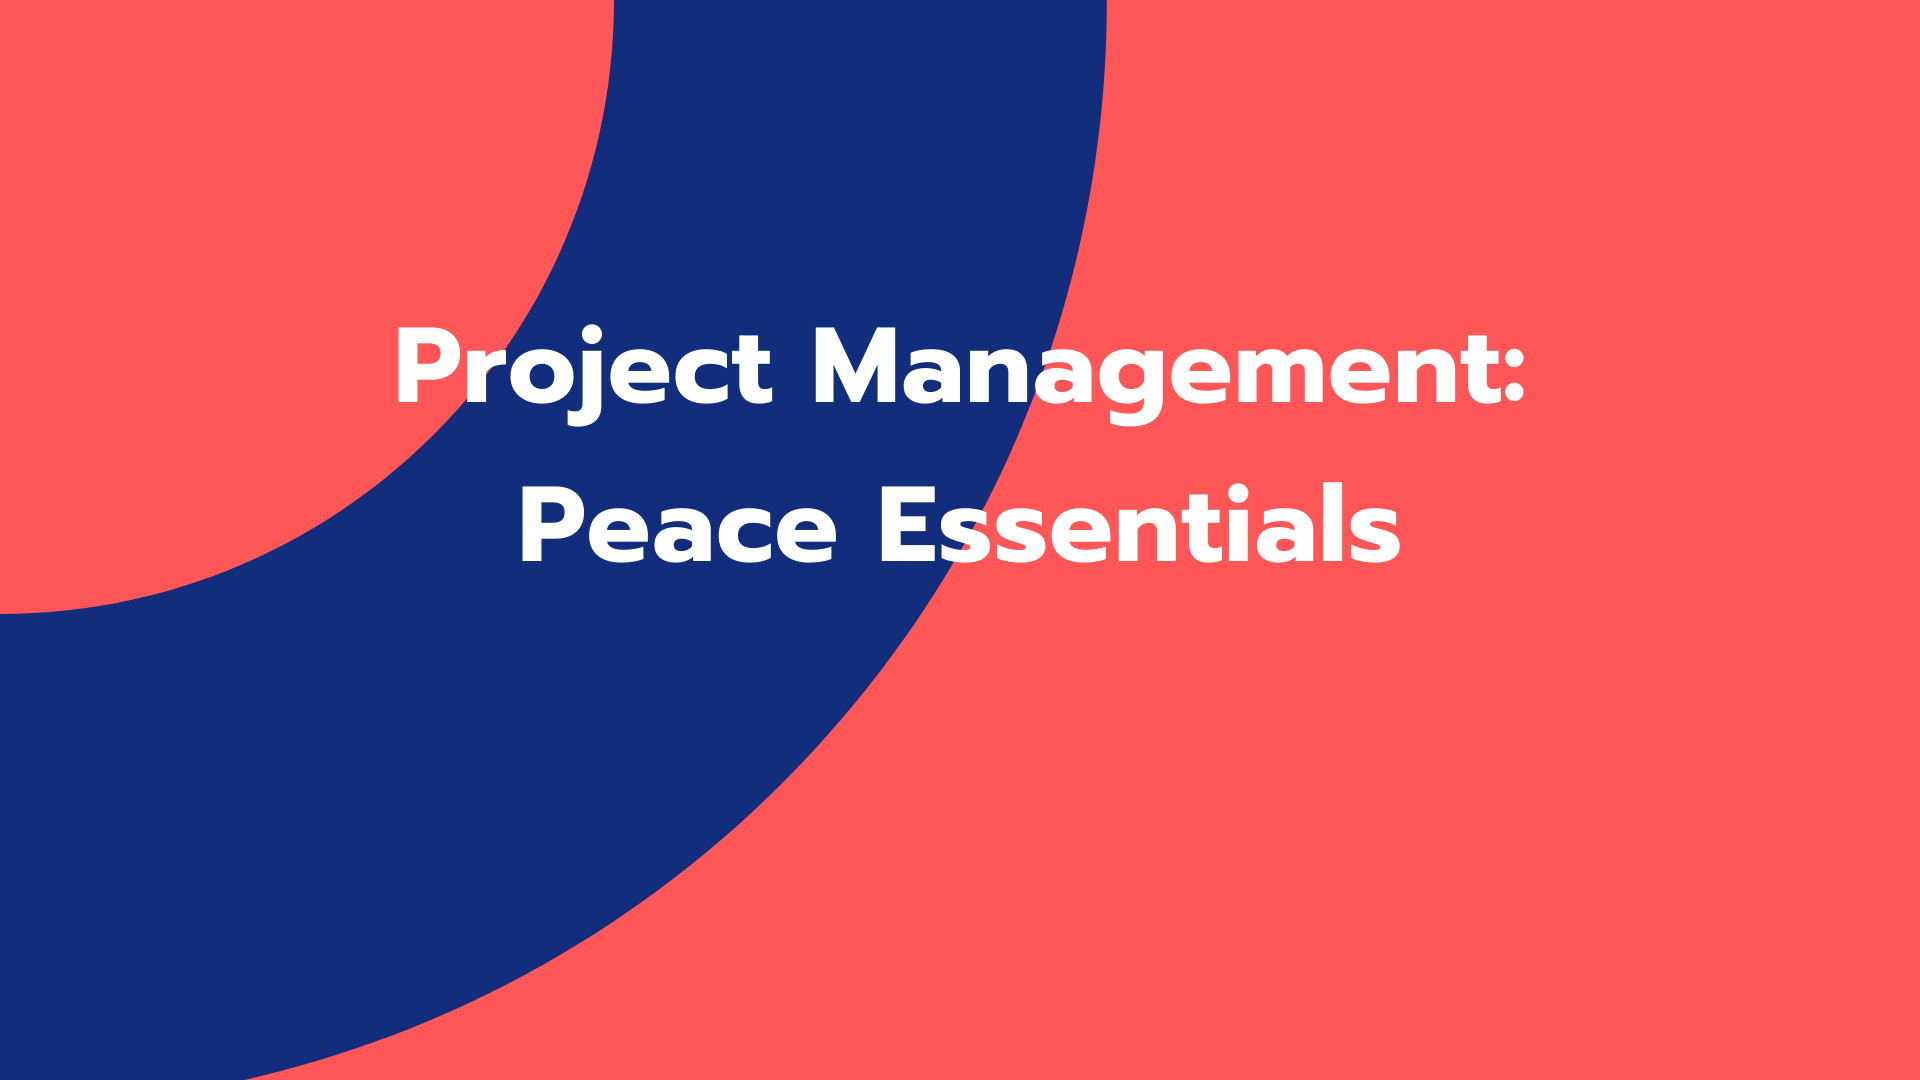 Project Management: Peace Essentials